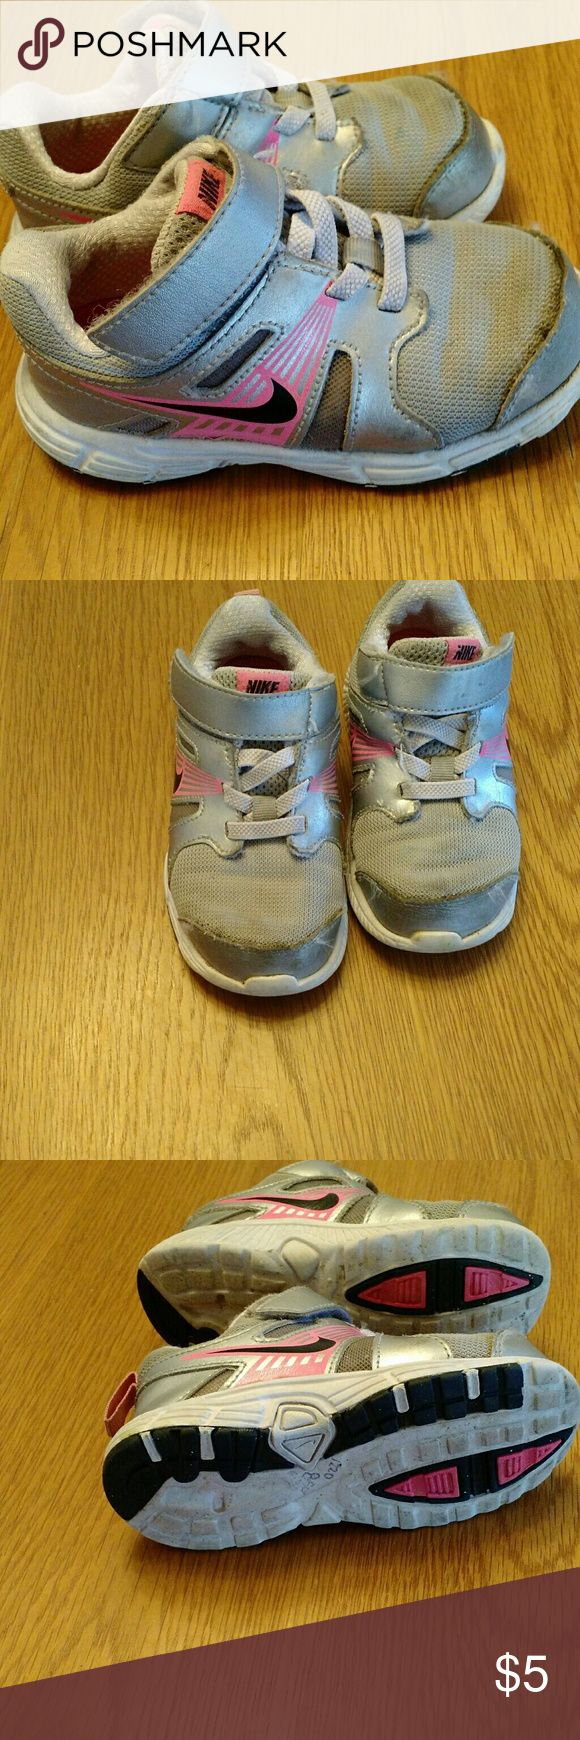 Toddler nike shoes Size 8 girl's Nike shoes decent condition Nike Shoes Sneakers